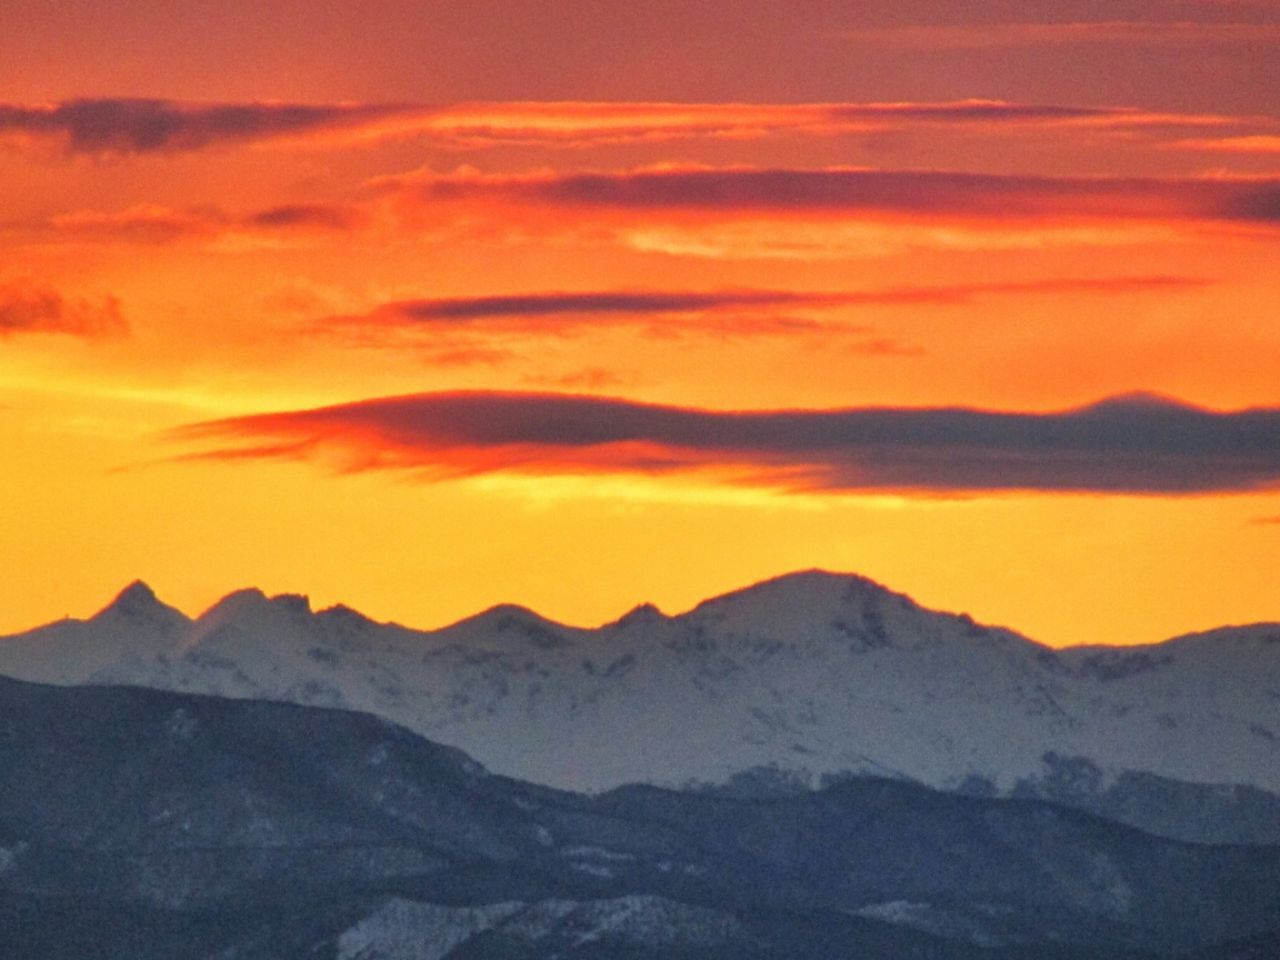 mountain, beauty in nature, nature, scenics, sunset, tranquility, orange color, mountain range, weather, tranquil scene, sky, majestic, outdoors, winter, snow, no people, idyllic, landscape, cold temperature, cloud - sky, silhouette, physical geography, day